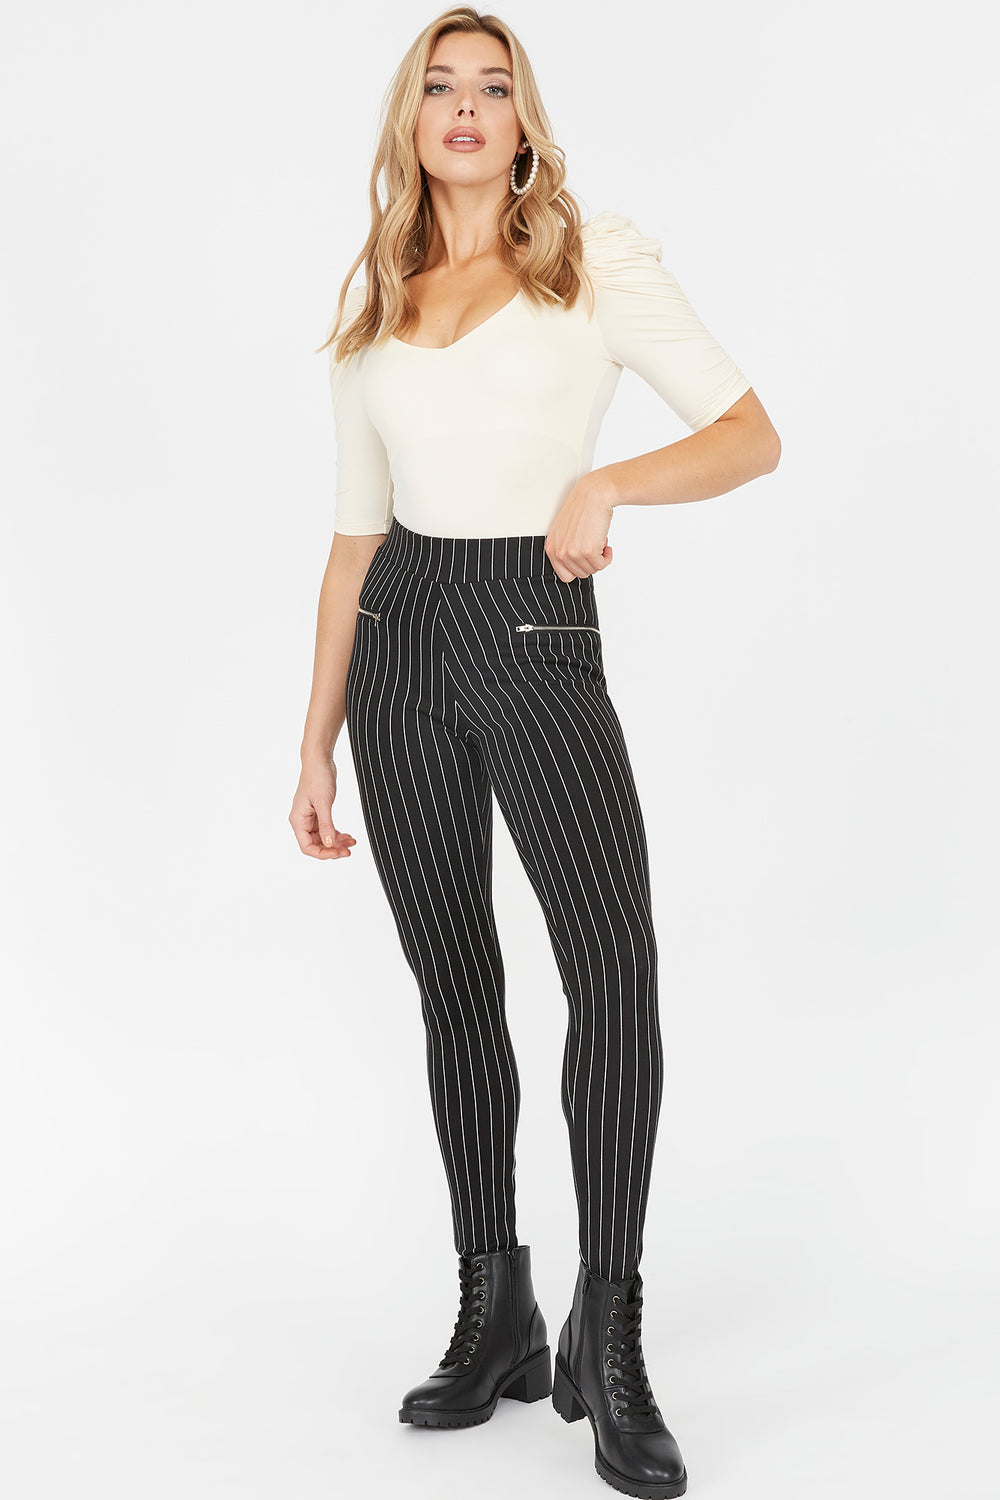 Soft High-Rise Printed Zip Legging Black with White